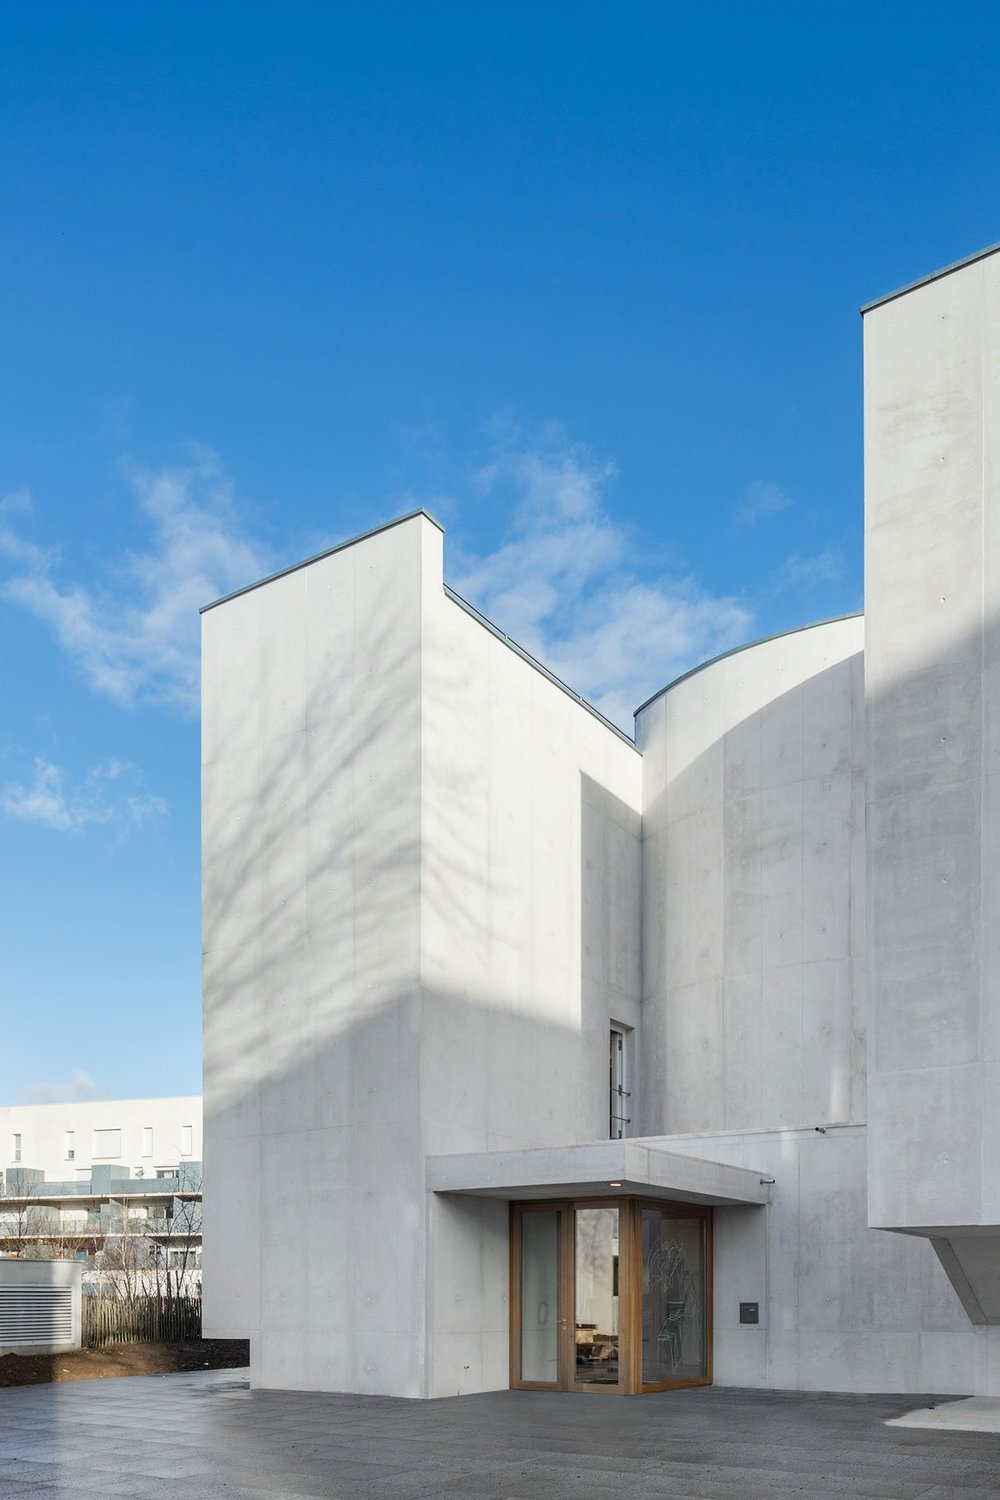 s5_church_of_saint_jacques_de_la_lande_rennes_france_alvaro_siza_vieira_dezainaa_6.jpg